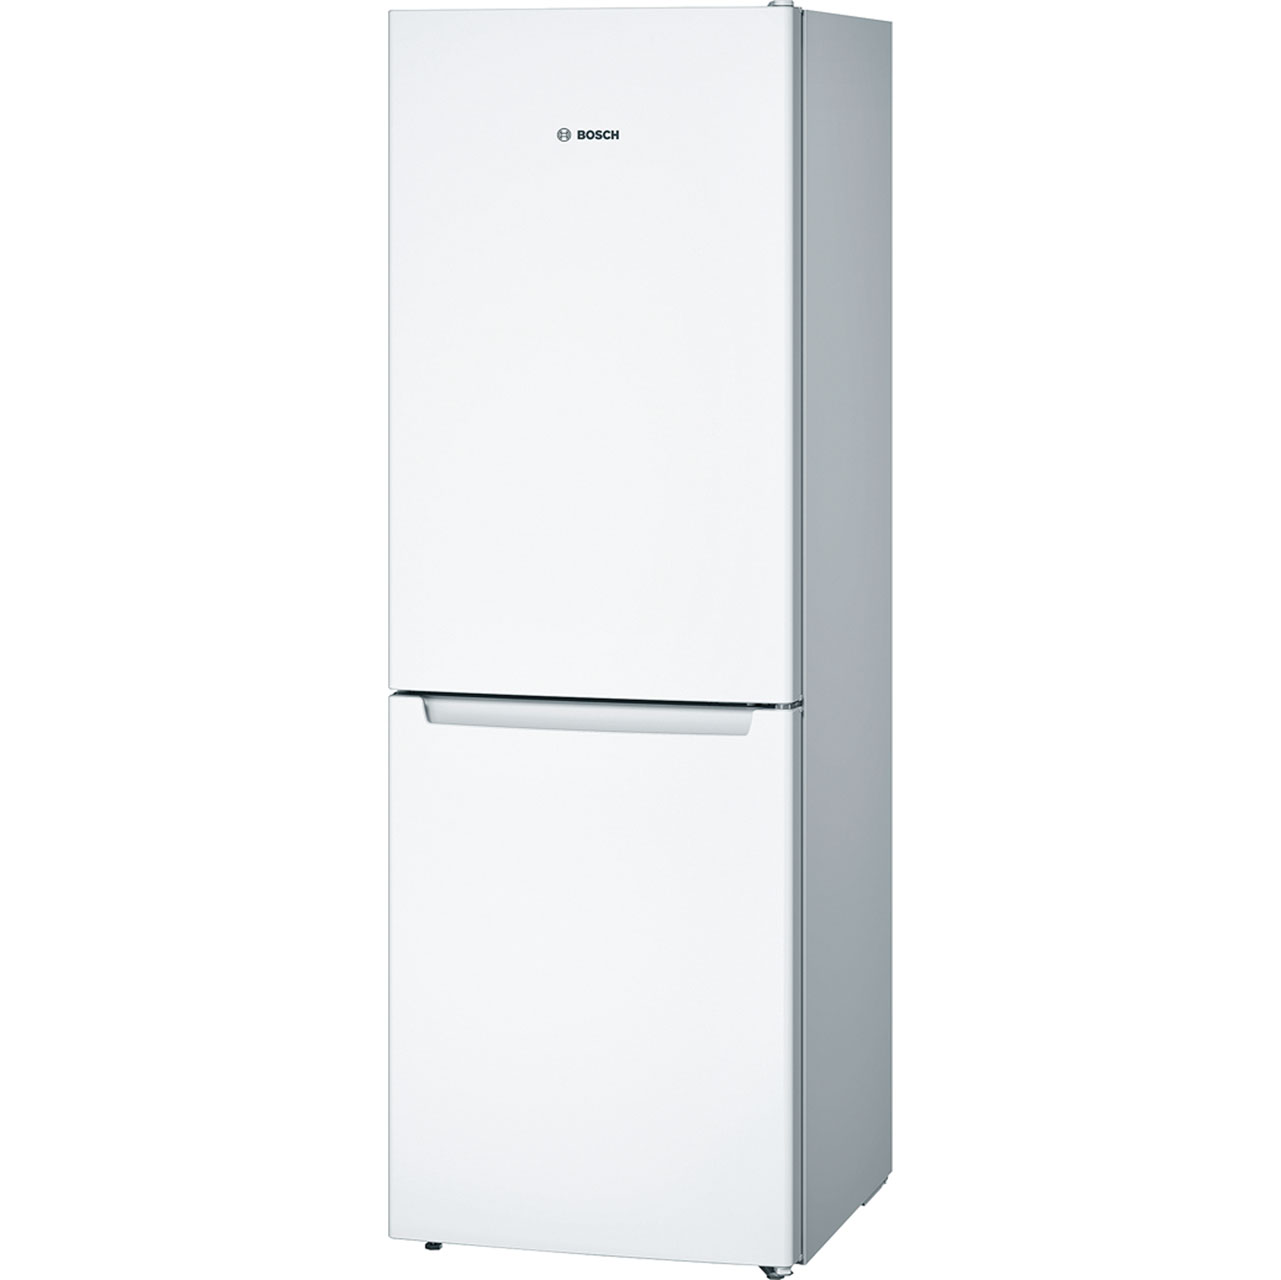 Image of Bosch Serie 2 KGN33NW20G Free Standing Fridge Freezer Frost Free in White